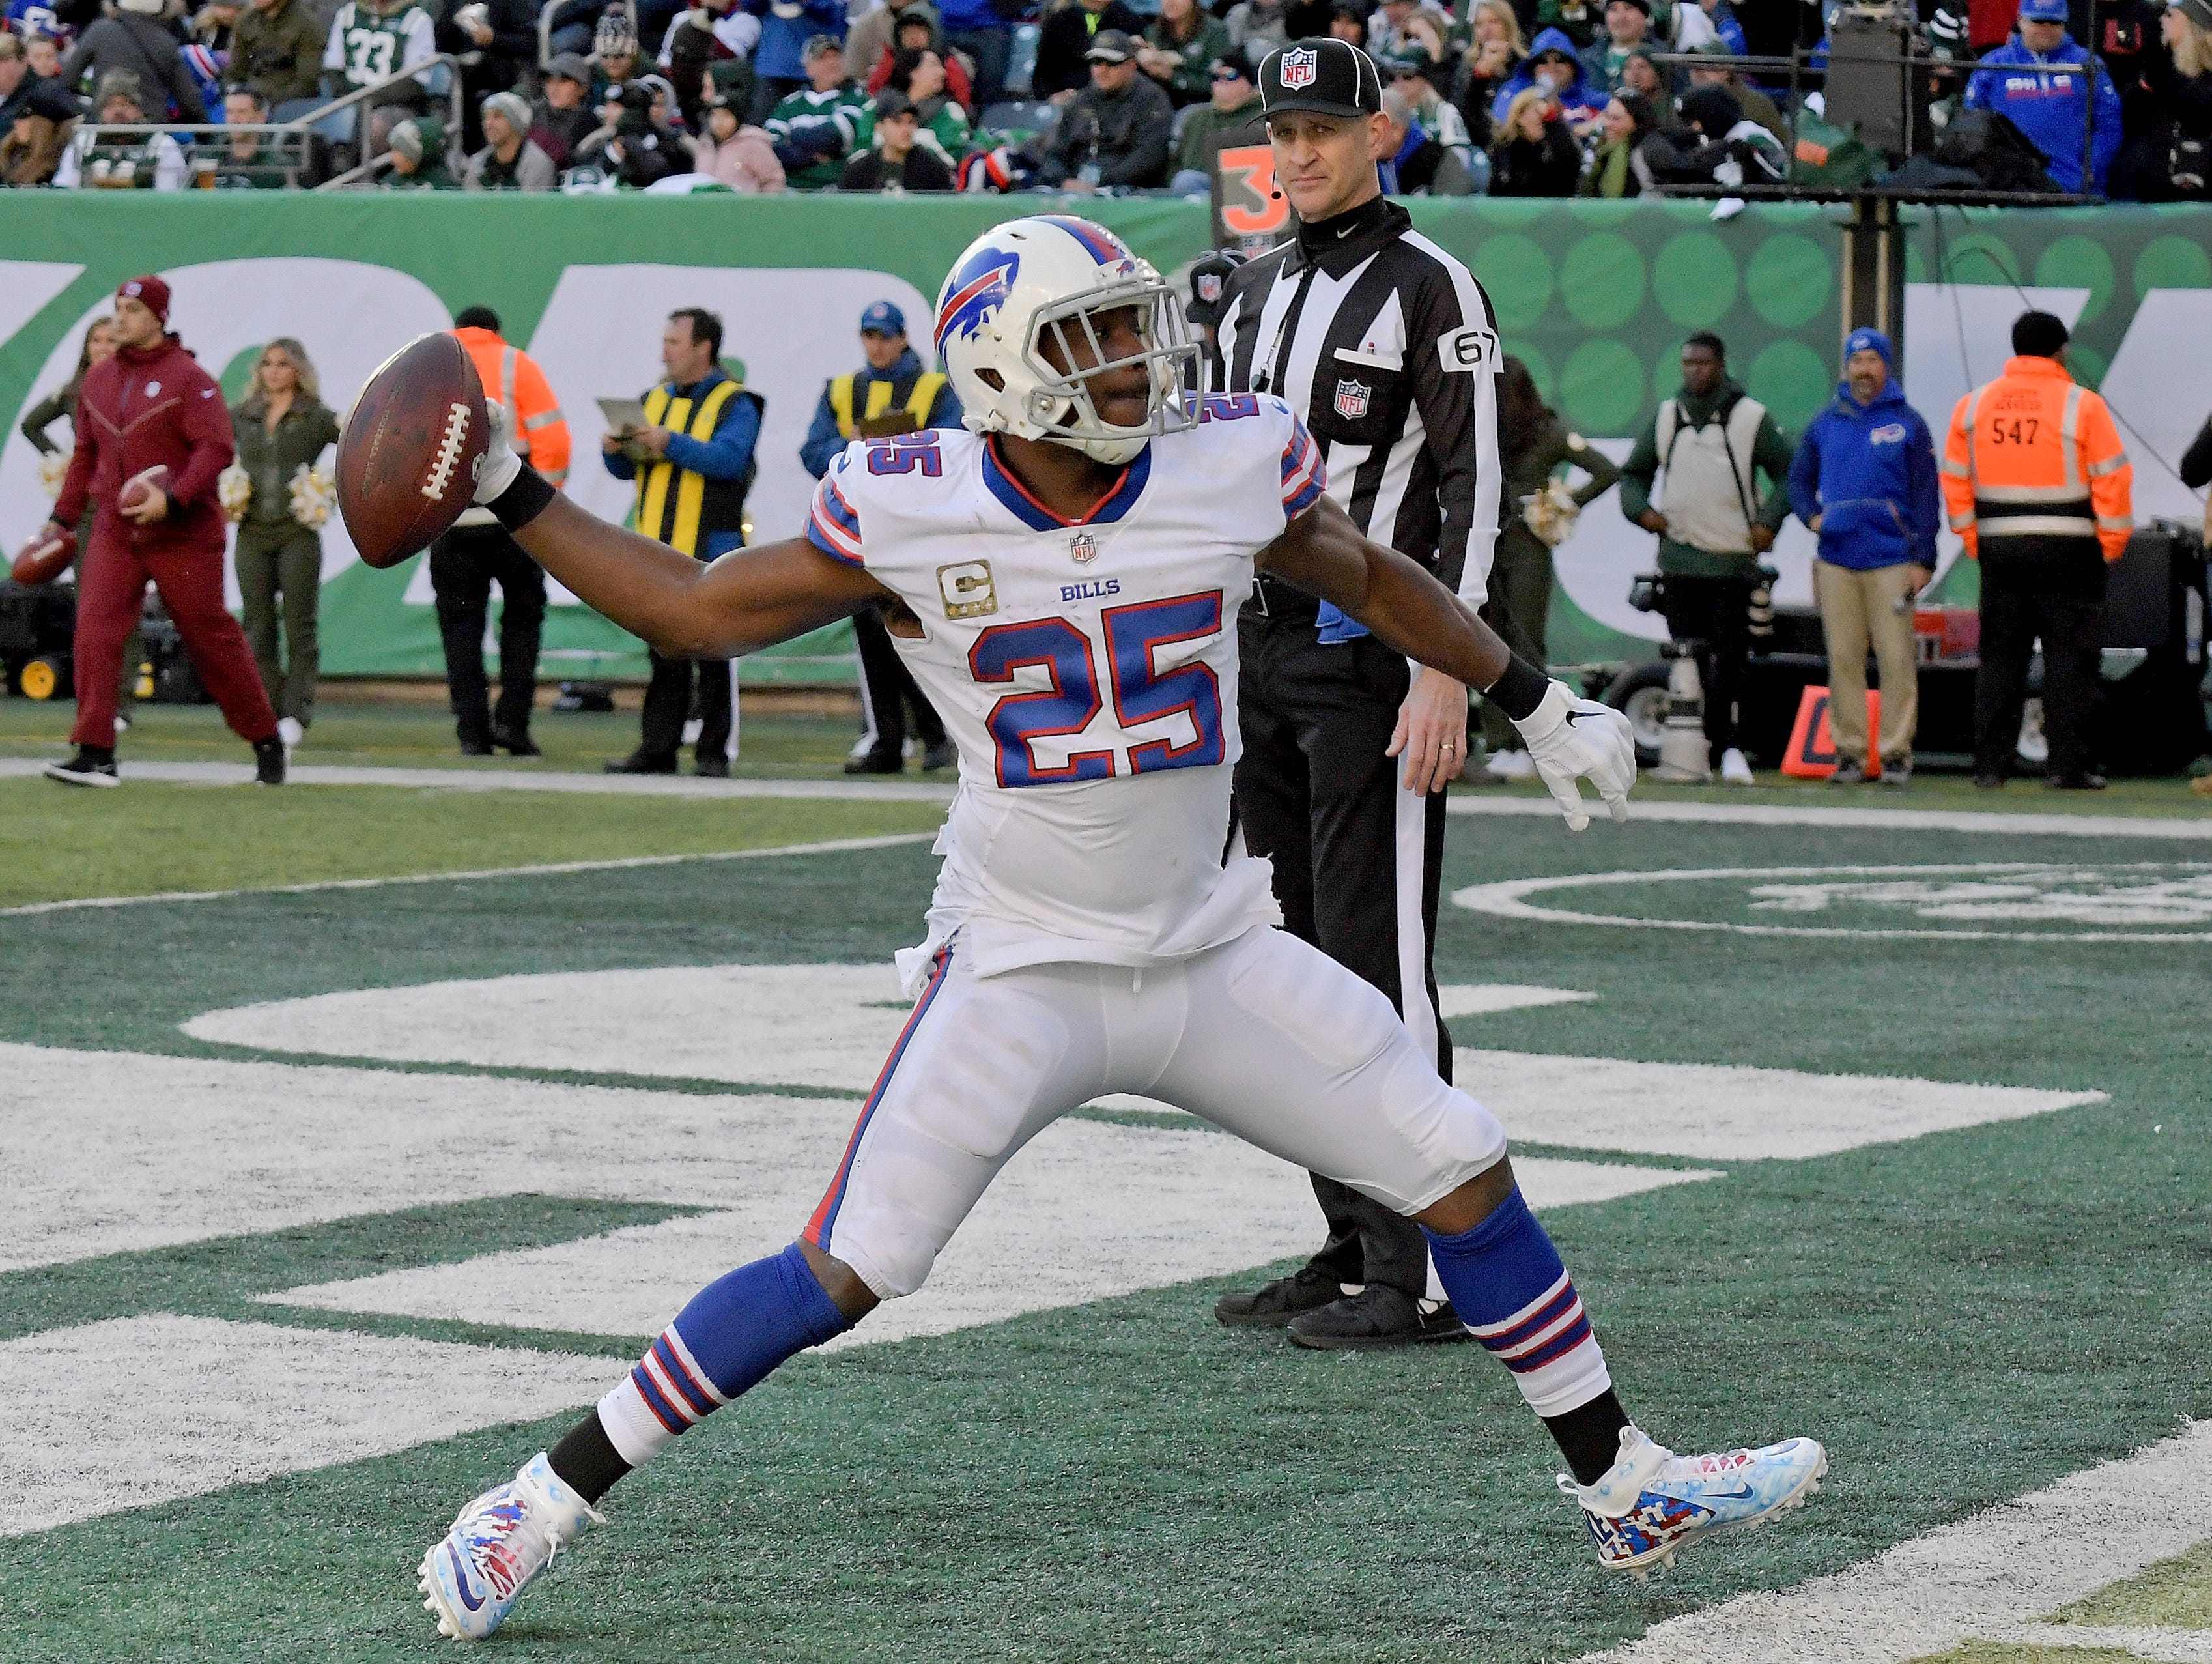 Buffalo Bills running back LeSean McCoy (25) celebrates after scoring a touchdown against the New York Jets during the second quarter of an NFL football game, Sunday, Nov. 11, 2018, in East Rutherford, N.J. (AP Photo/Bill Kostroun)